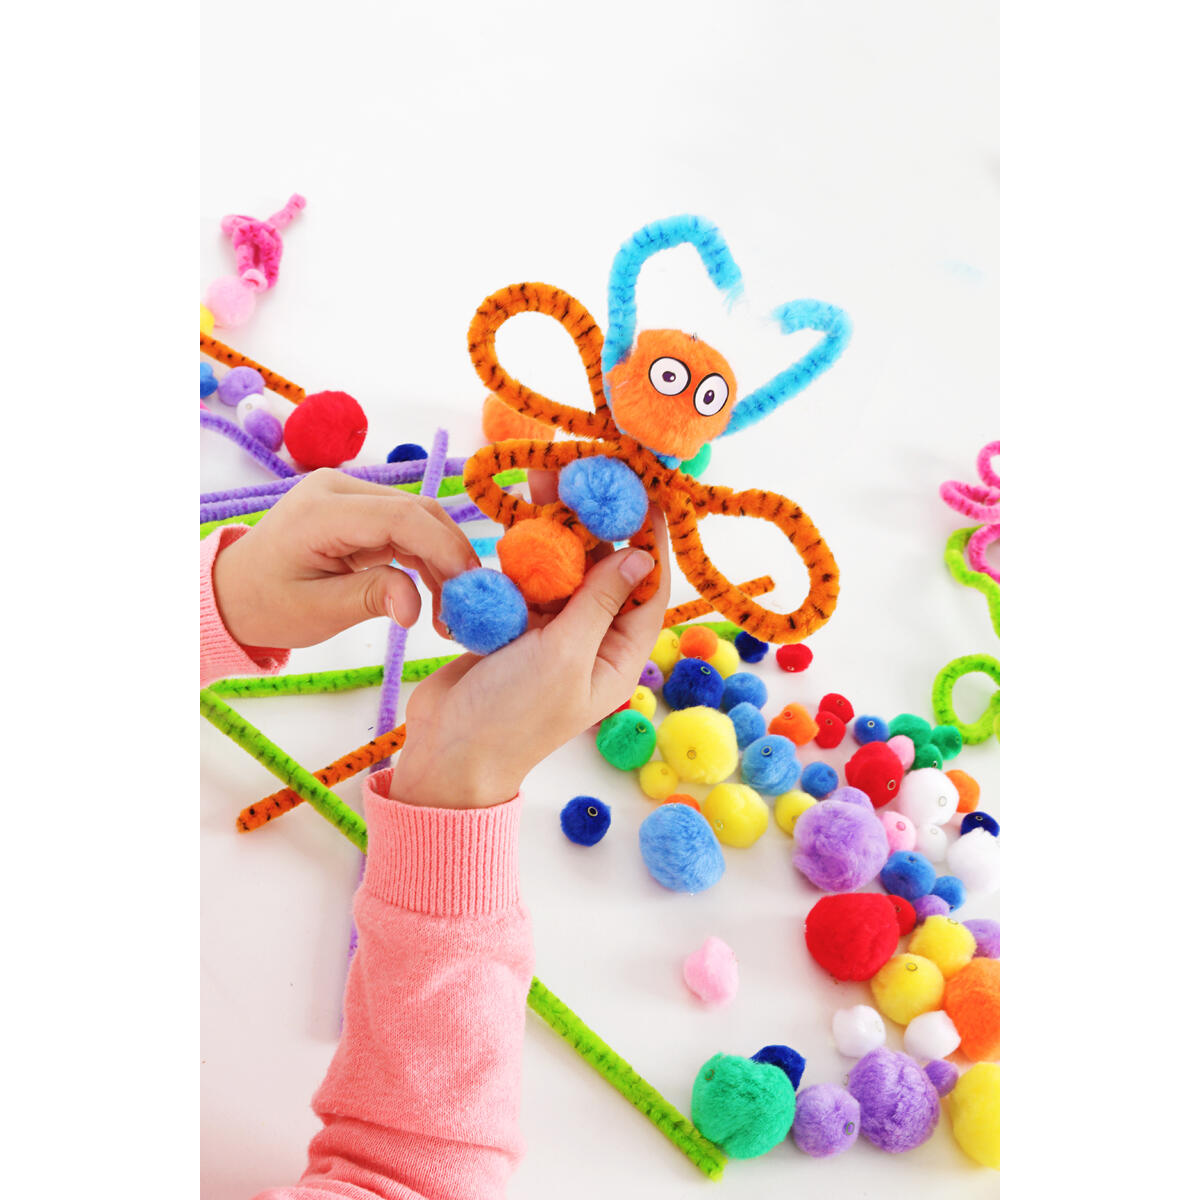 Incraftables 2000 Pcs Pom Poms with Googly Eyes. Best Colored & Glitter Cotton 0.4 to 1.4 inch Balls for DIY Craft, Hats & Decorations.